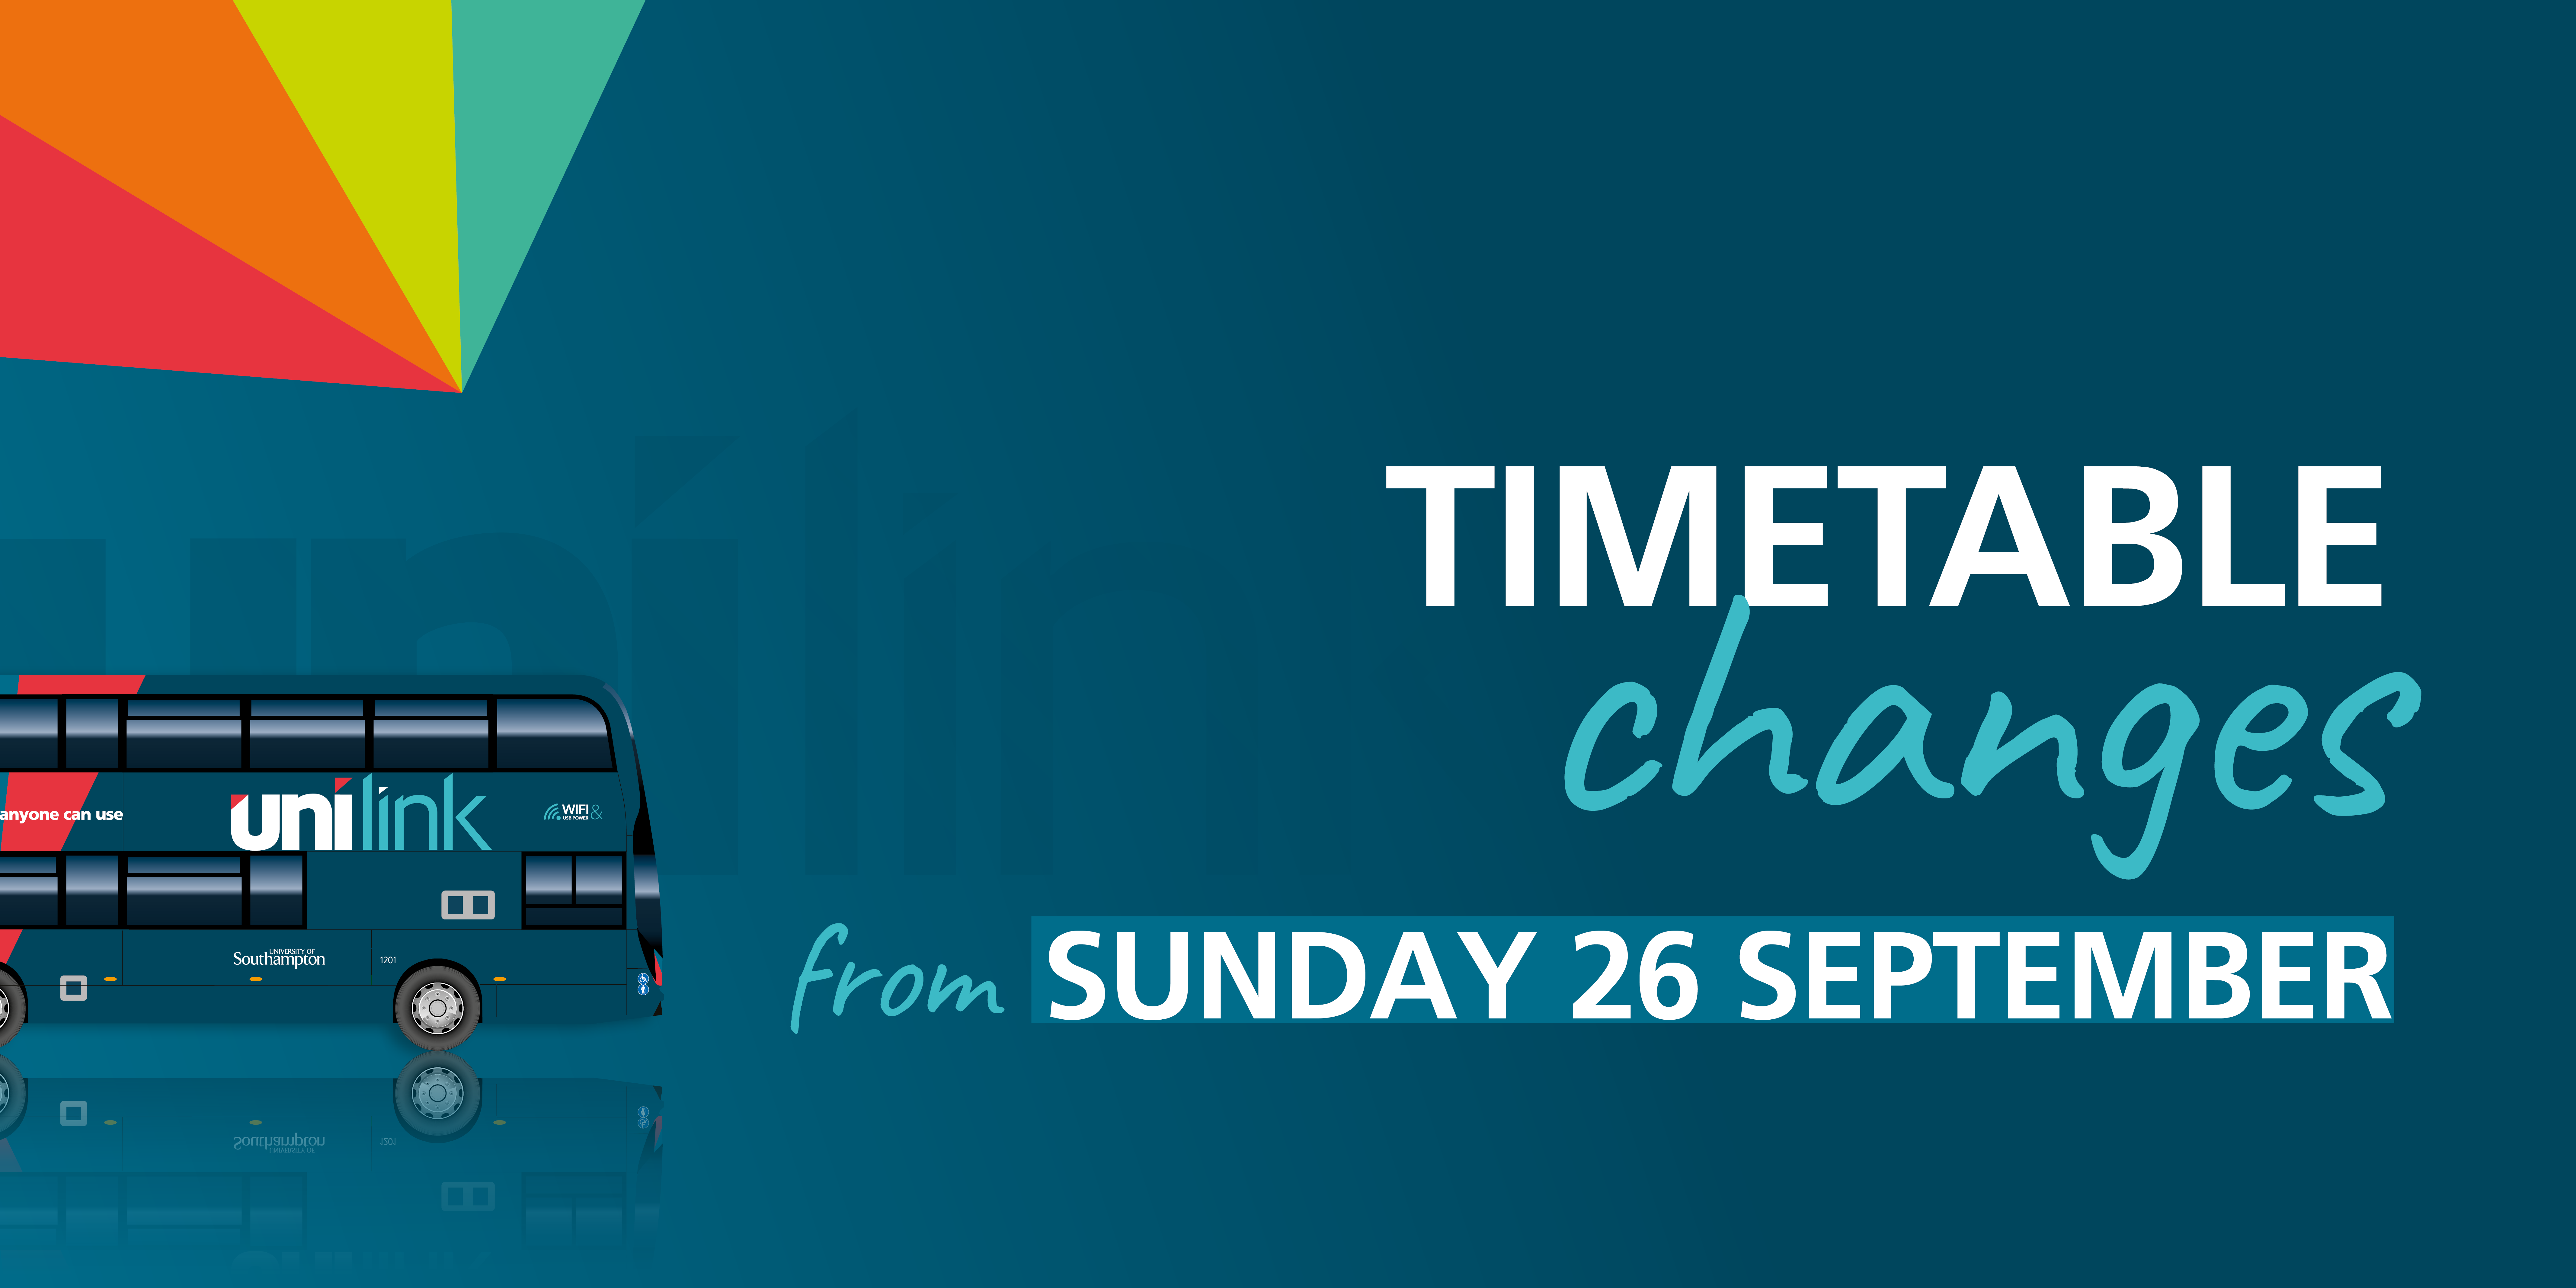 timetable changes from monday 26 september